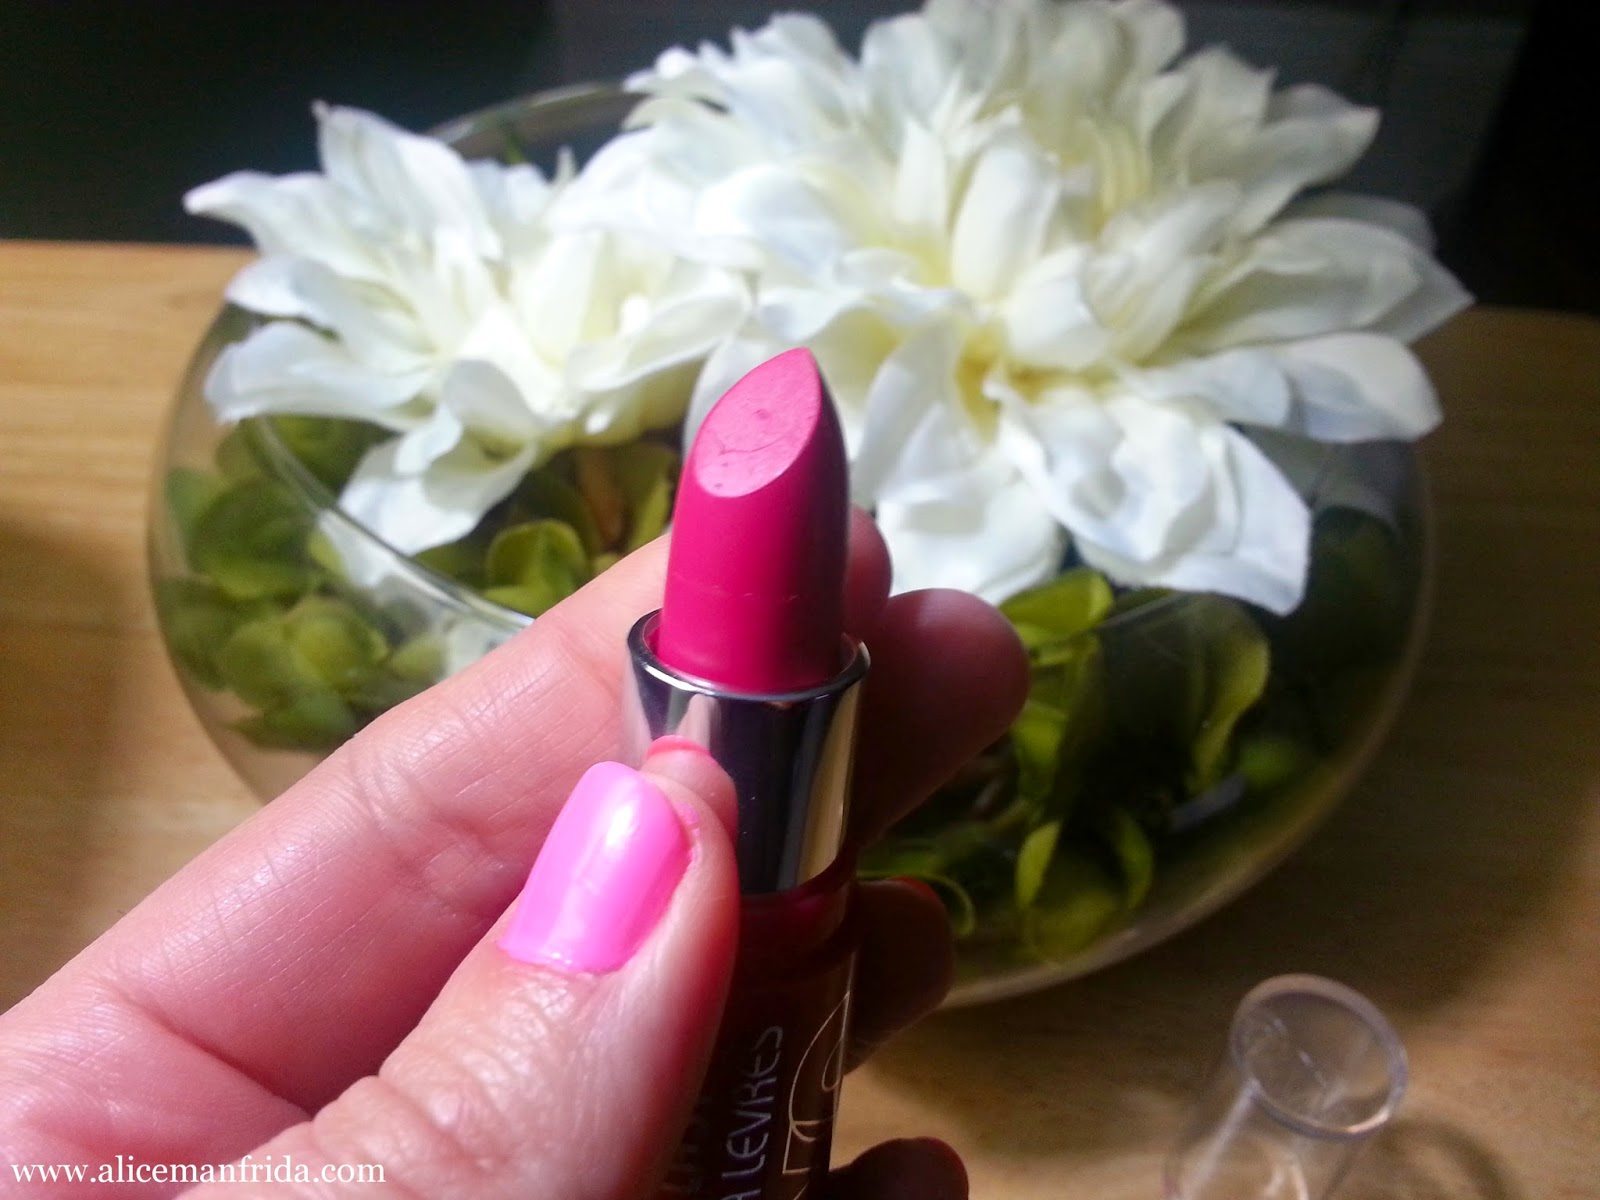 404 Air Kiss, lipstick, pink, hot pink, bargain, budget, drugstore, beauty, makeup